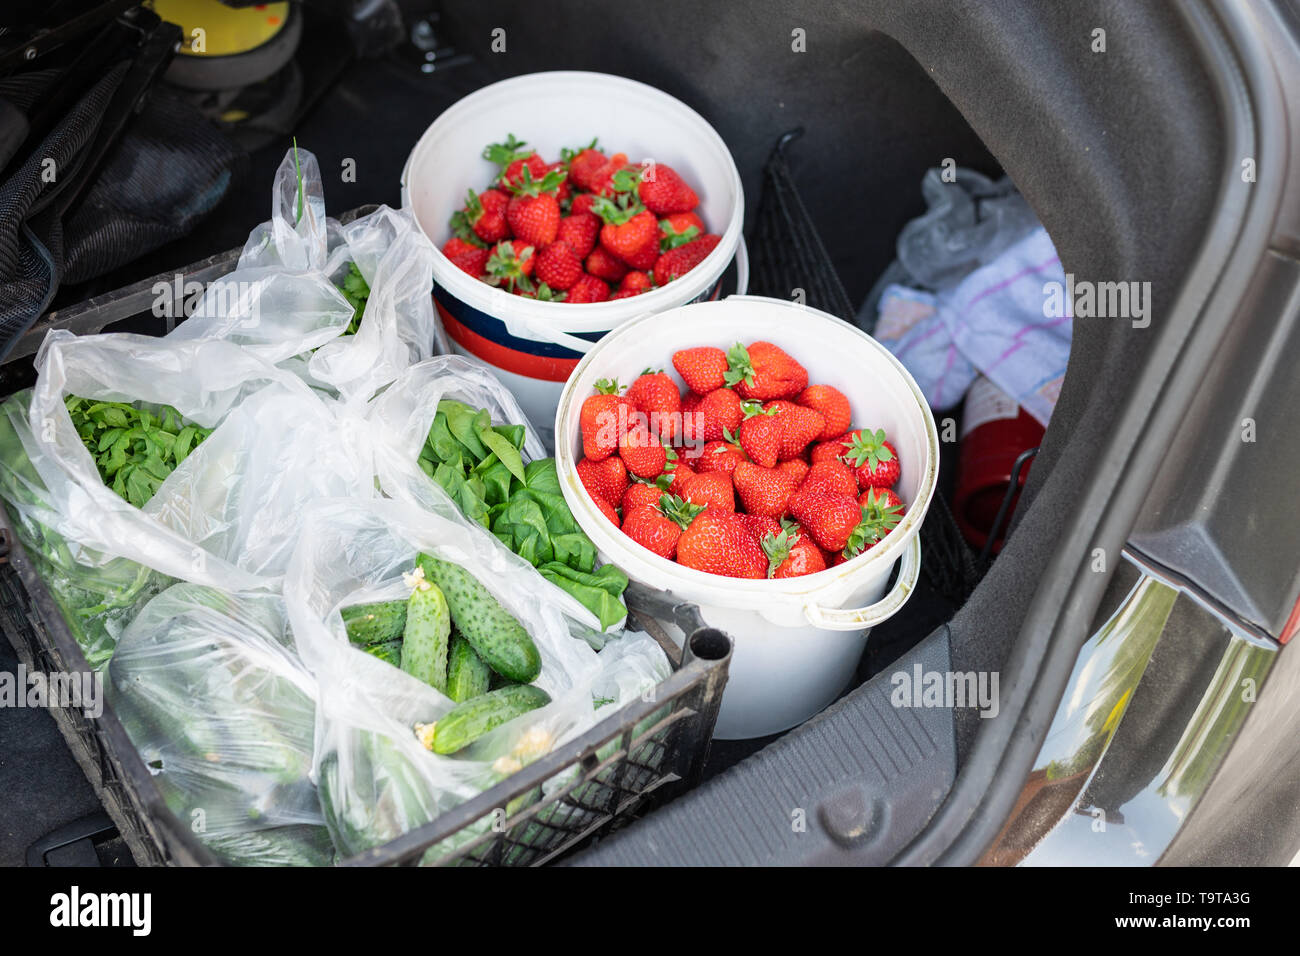 Close-up car trunk with fresh ripe organic vegetables and berries bought  on farmers market. Red juicy sweet strawberries ,greenery and cucumbers in b - Stock Image